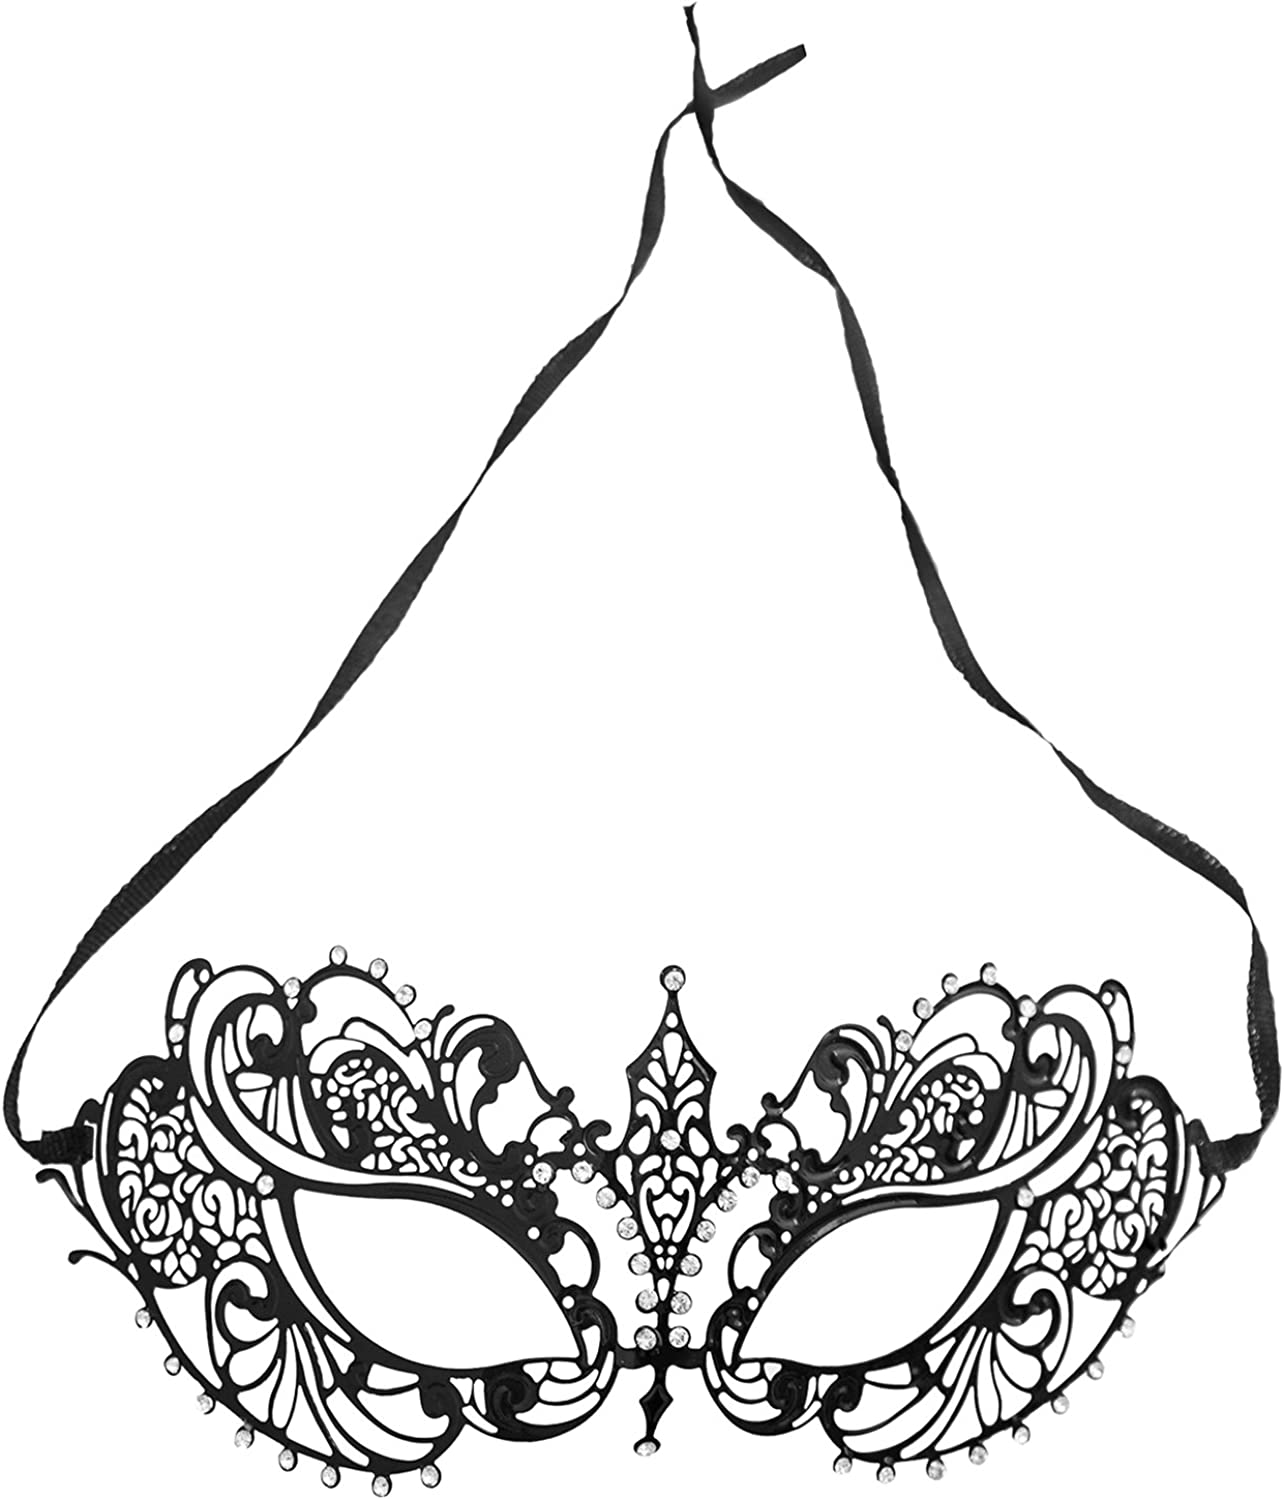 Venetian Butterfly Minimalist Black Brocade Lace Costume Mask Elegant Macrame Lace Masquerade Ball Mask with Clear Crystal